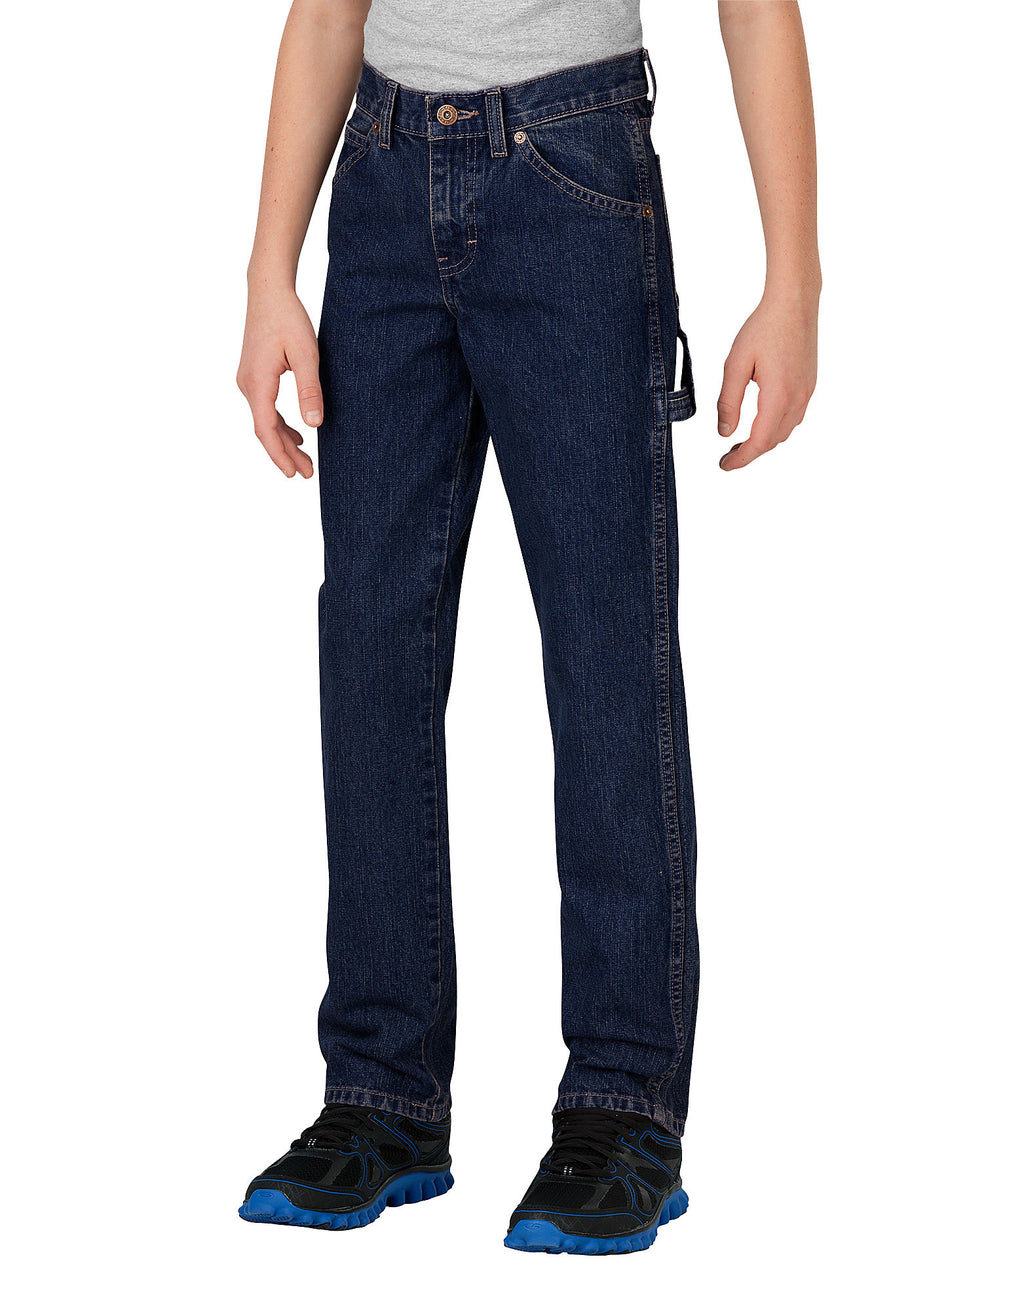 Dickies Boys Relaxed Fit Straight Leg Denim Carpenter Jeans, Sizes 8-20